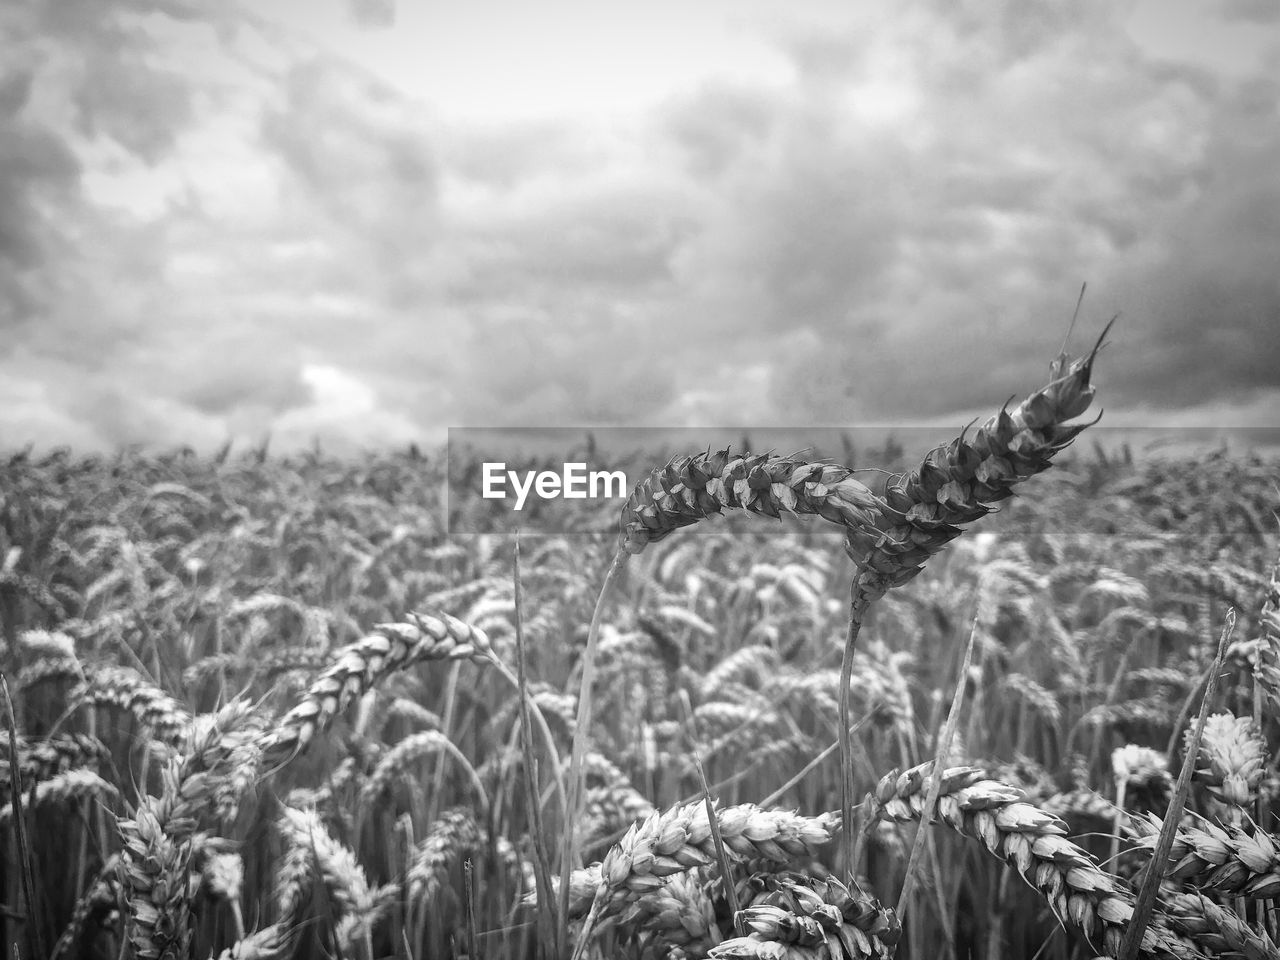 field, agriculture, farm, nature, crop, growth, cereal plant, no people, sky, rural scene, wheat, landscape, beauty in nature, outdoors, cloud - sky, day, tranquil scene, plant, tranquility, scenics, grass, ear of wheat, close-up, food, hay bale